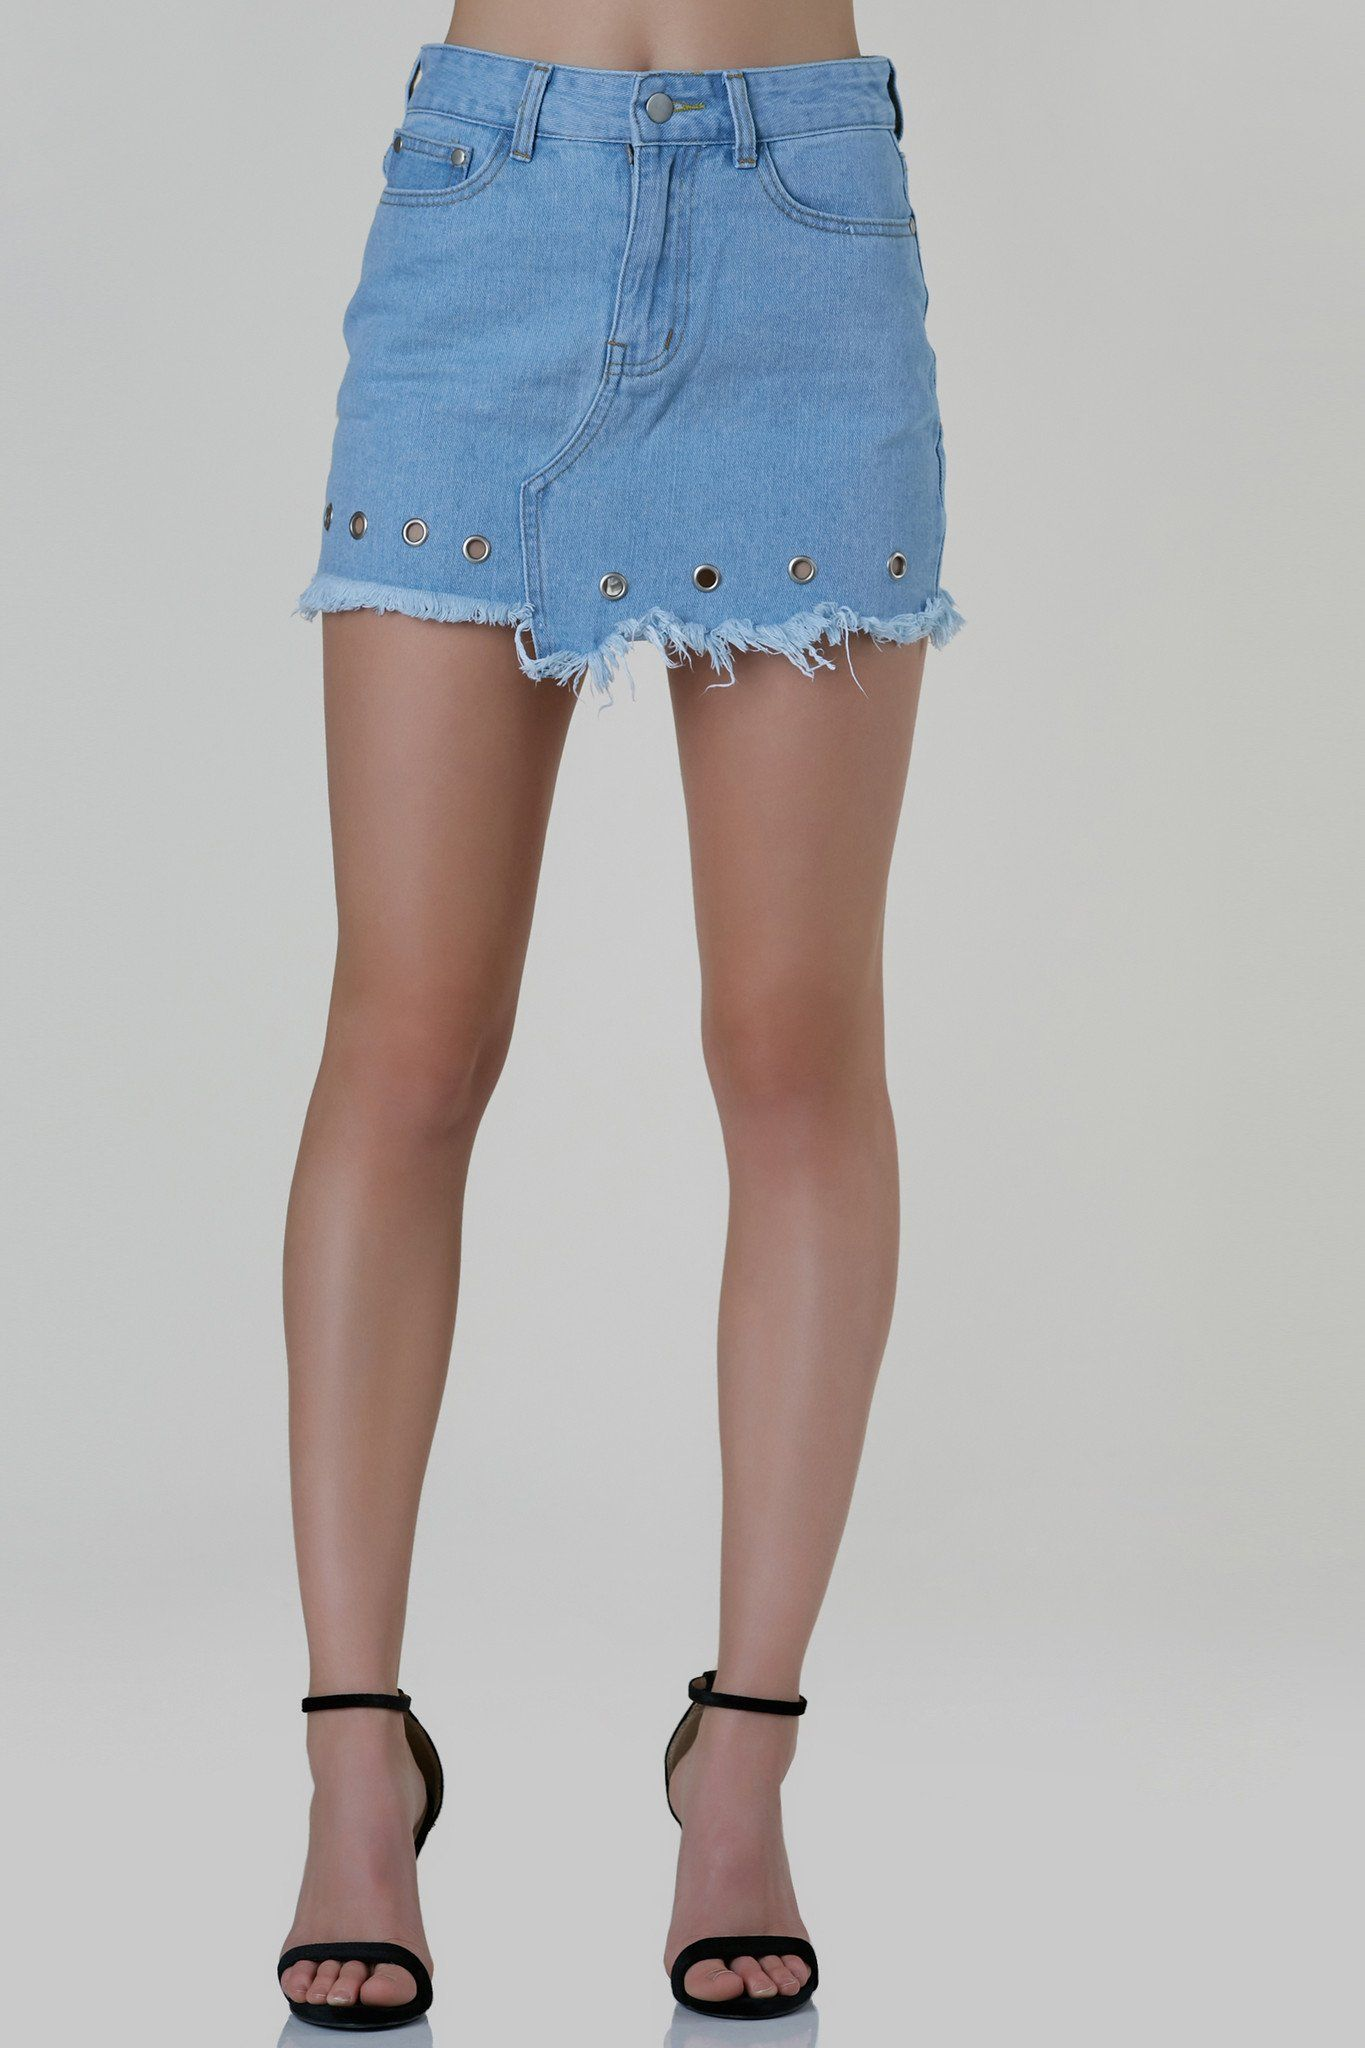 ccacc1c432 Trendy high rise denim skirt with frayed uneven raw hem finish. Silver  eyelet detailing in front with classic button zip closure.